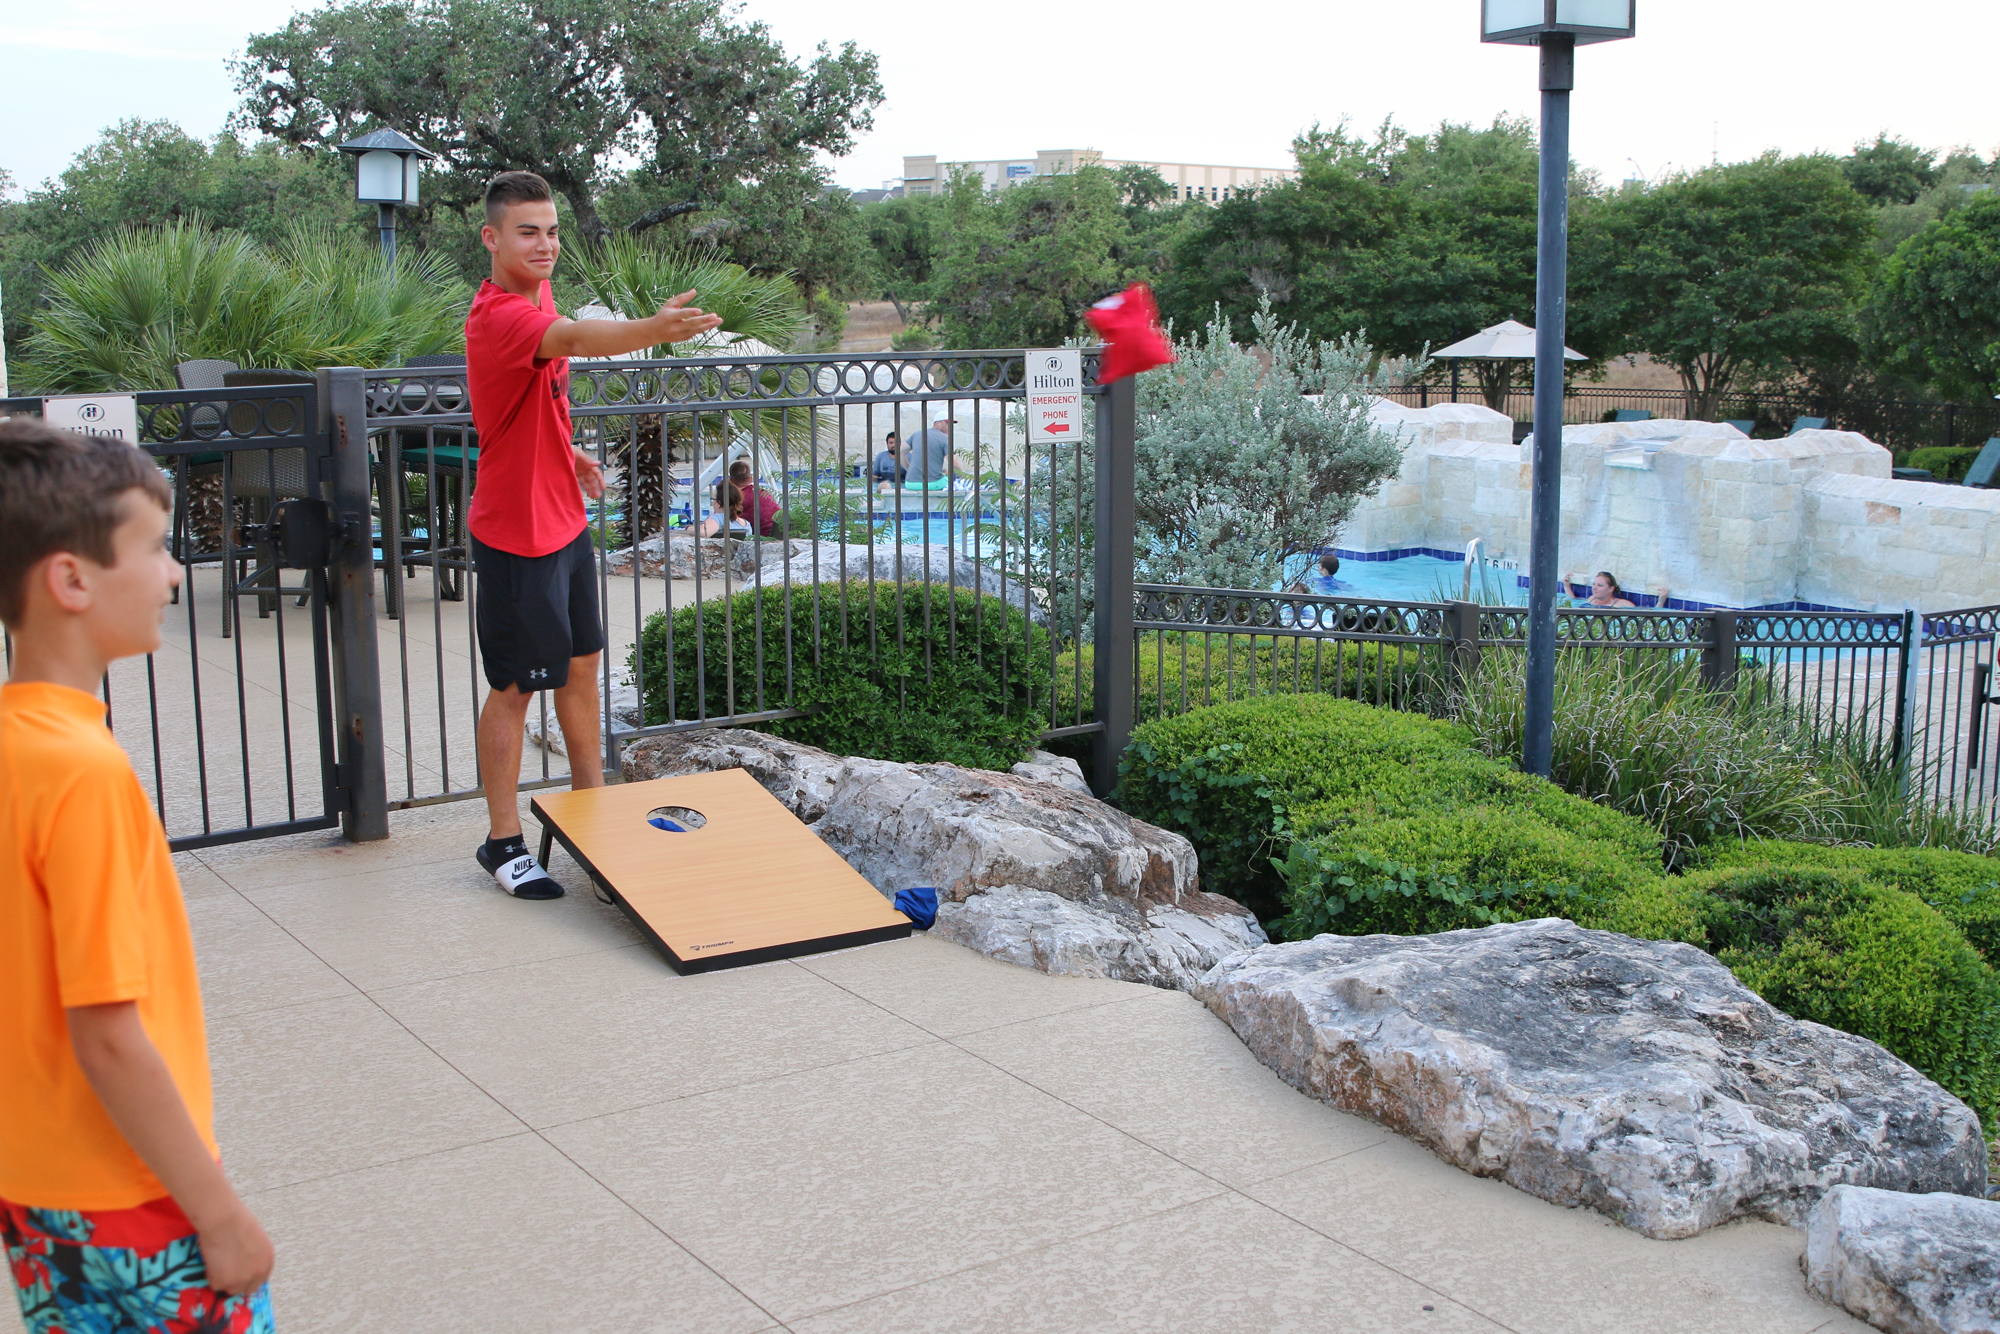 play corn hole at Hilton hotel